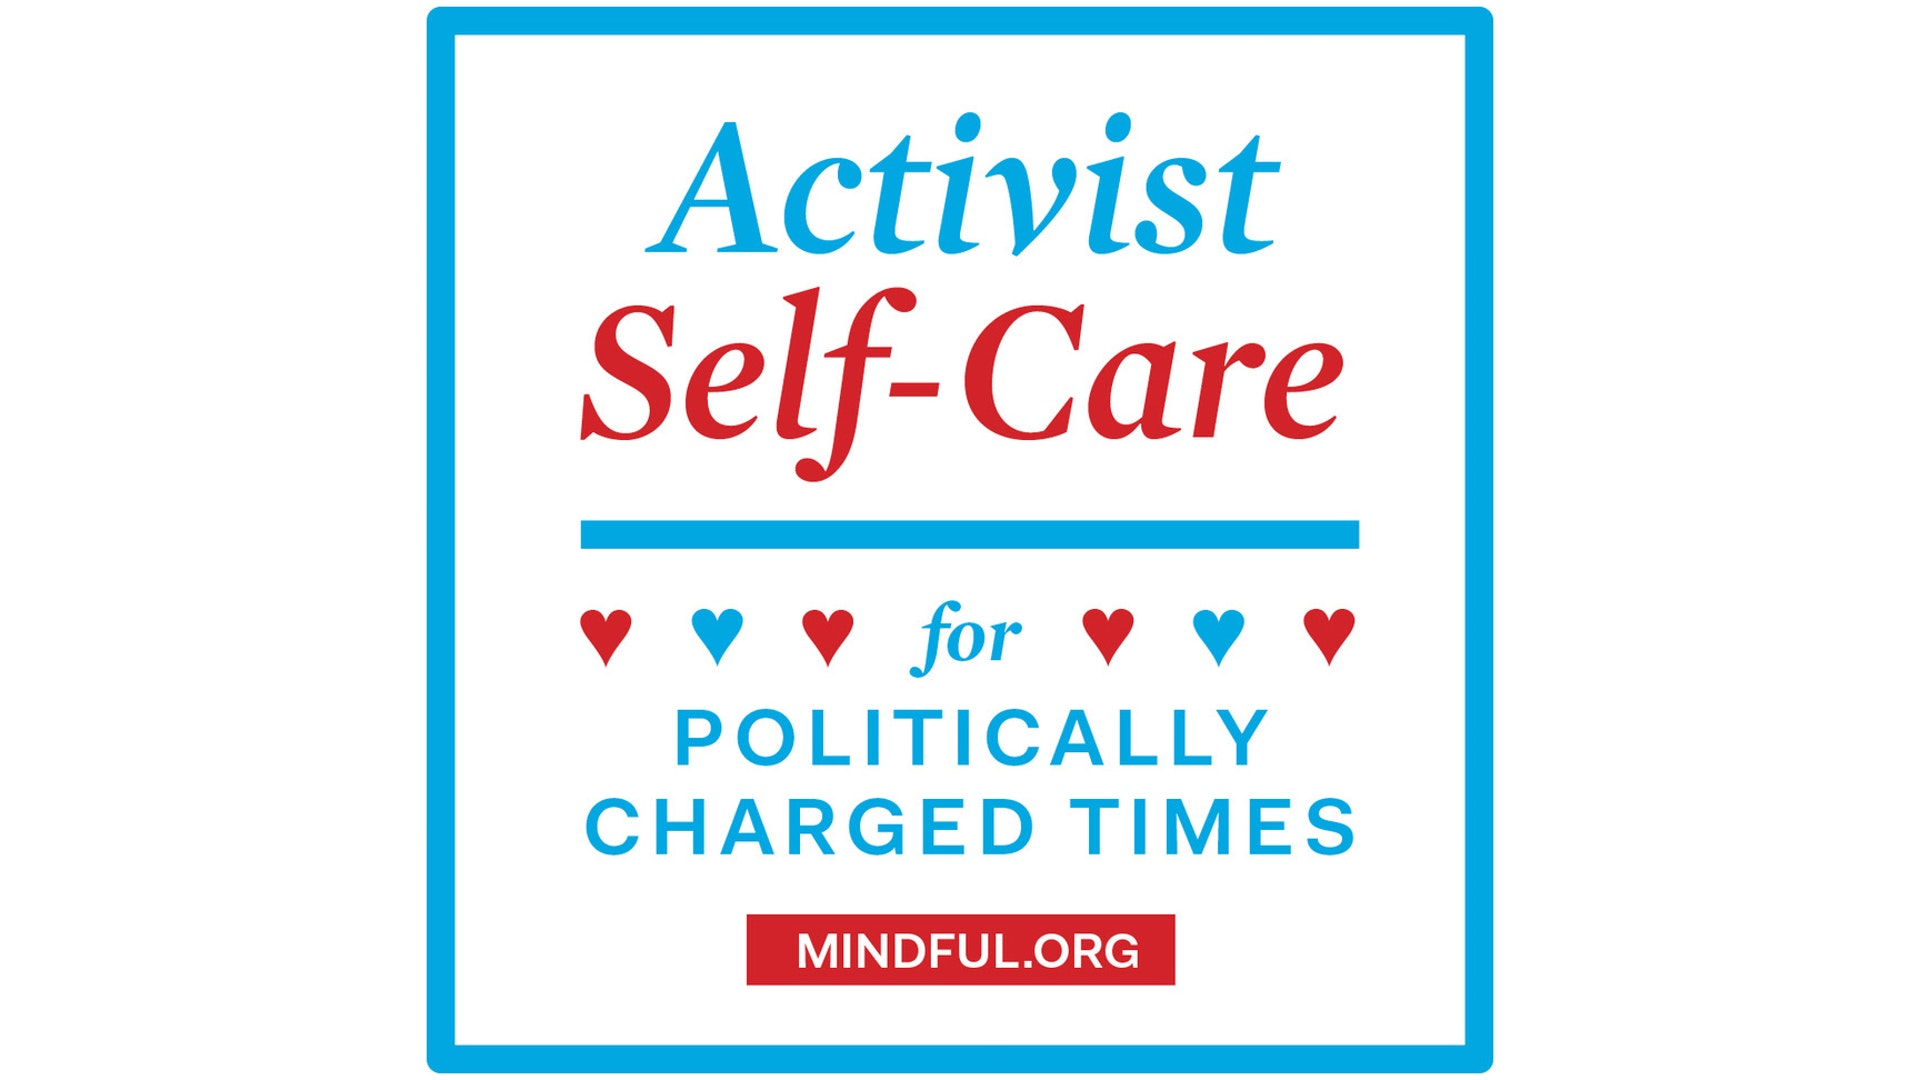 Mindful.org presents: Self-Care for Activists in Politically Charged Times